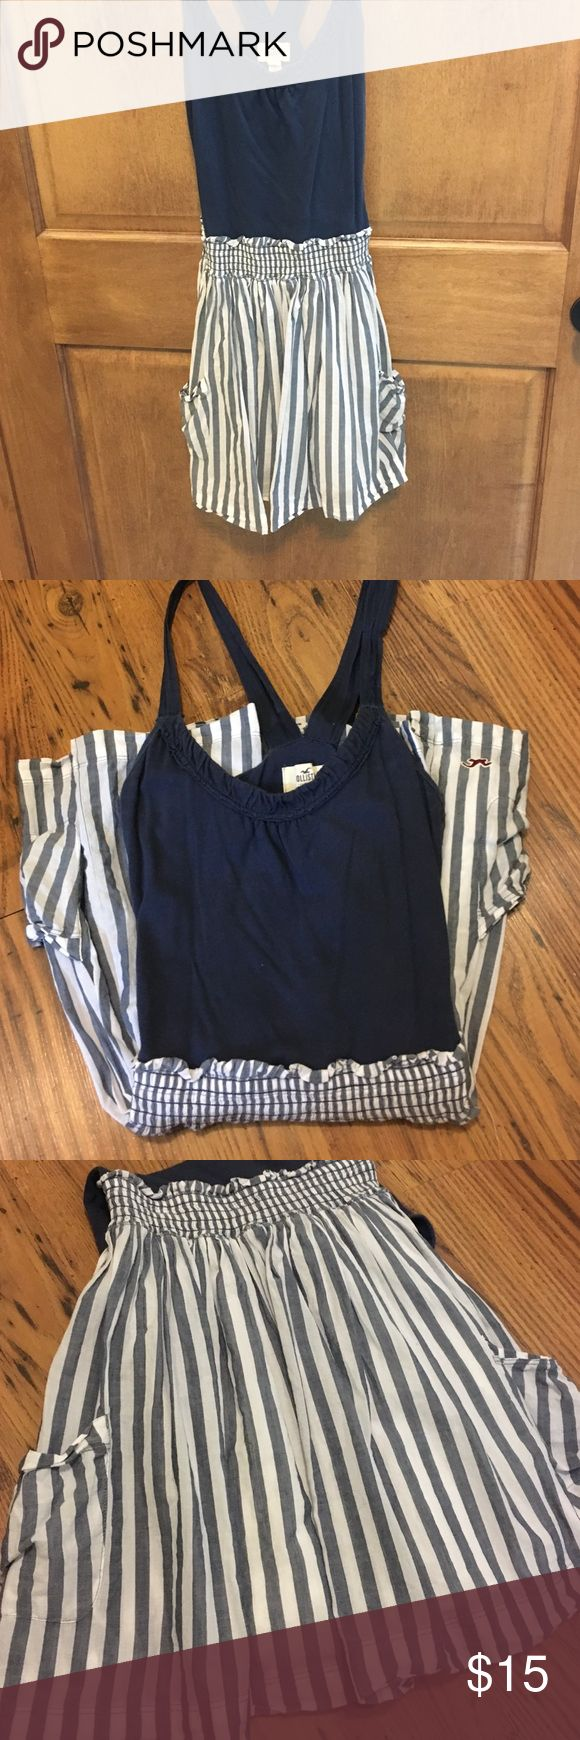 Blue and white striped mini dress The blue part is like a halter top that connects to a flowy blue and white striped skirt. The skirt has pockets. Hollister Dresses Mini